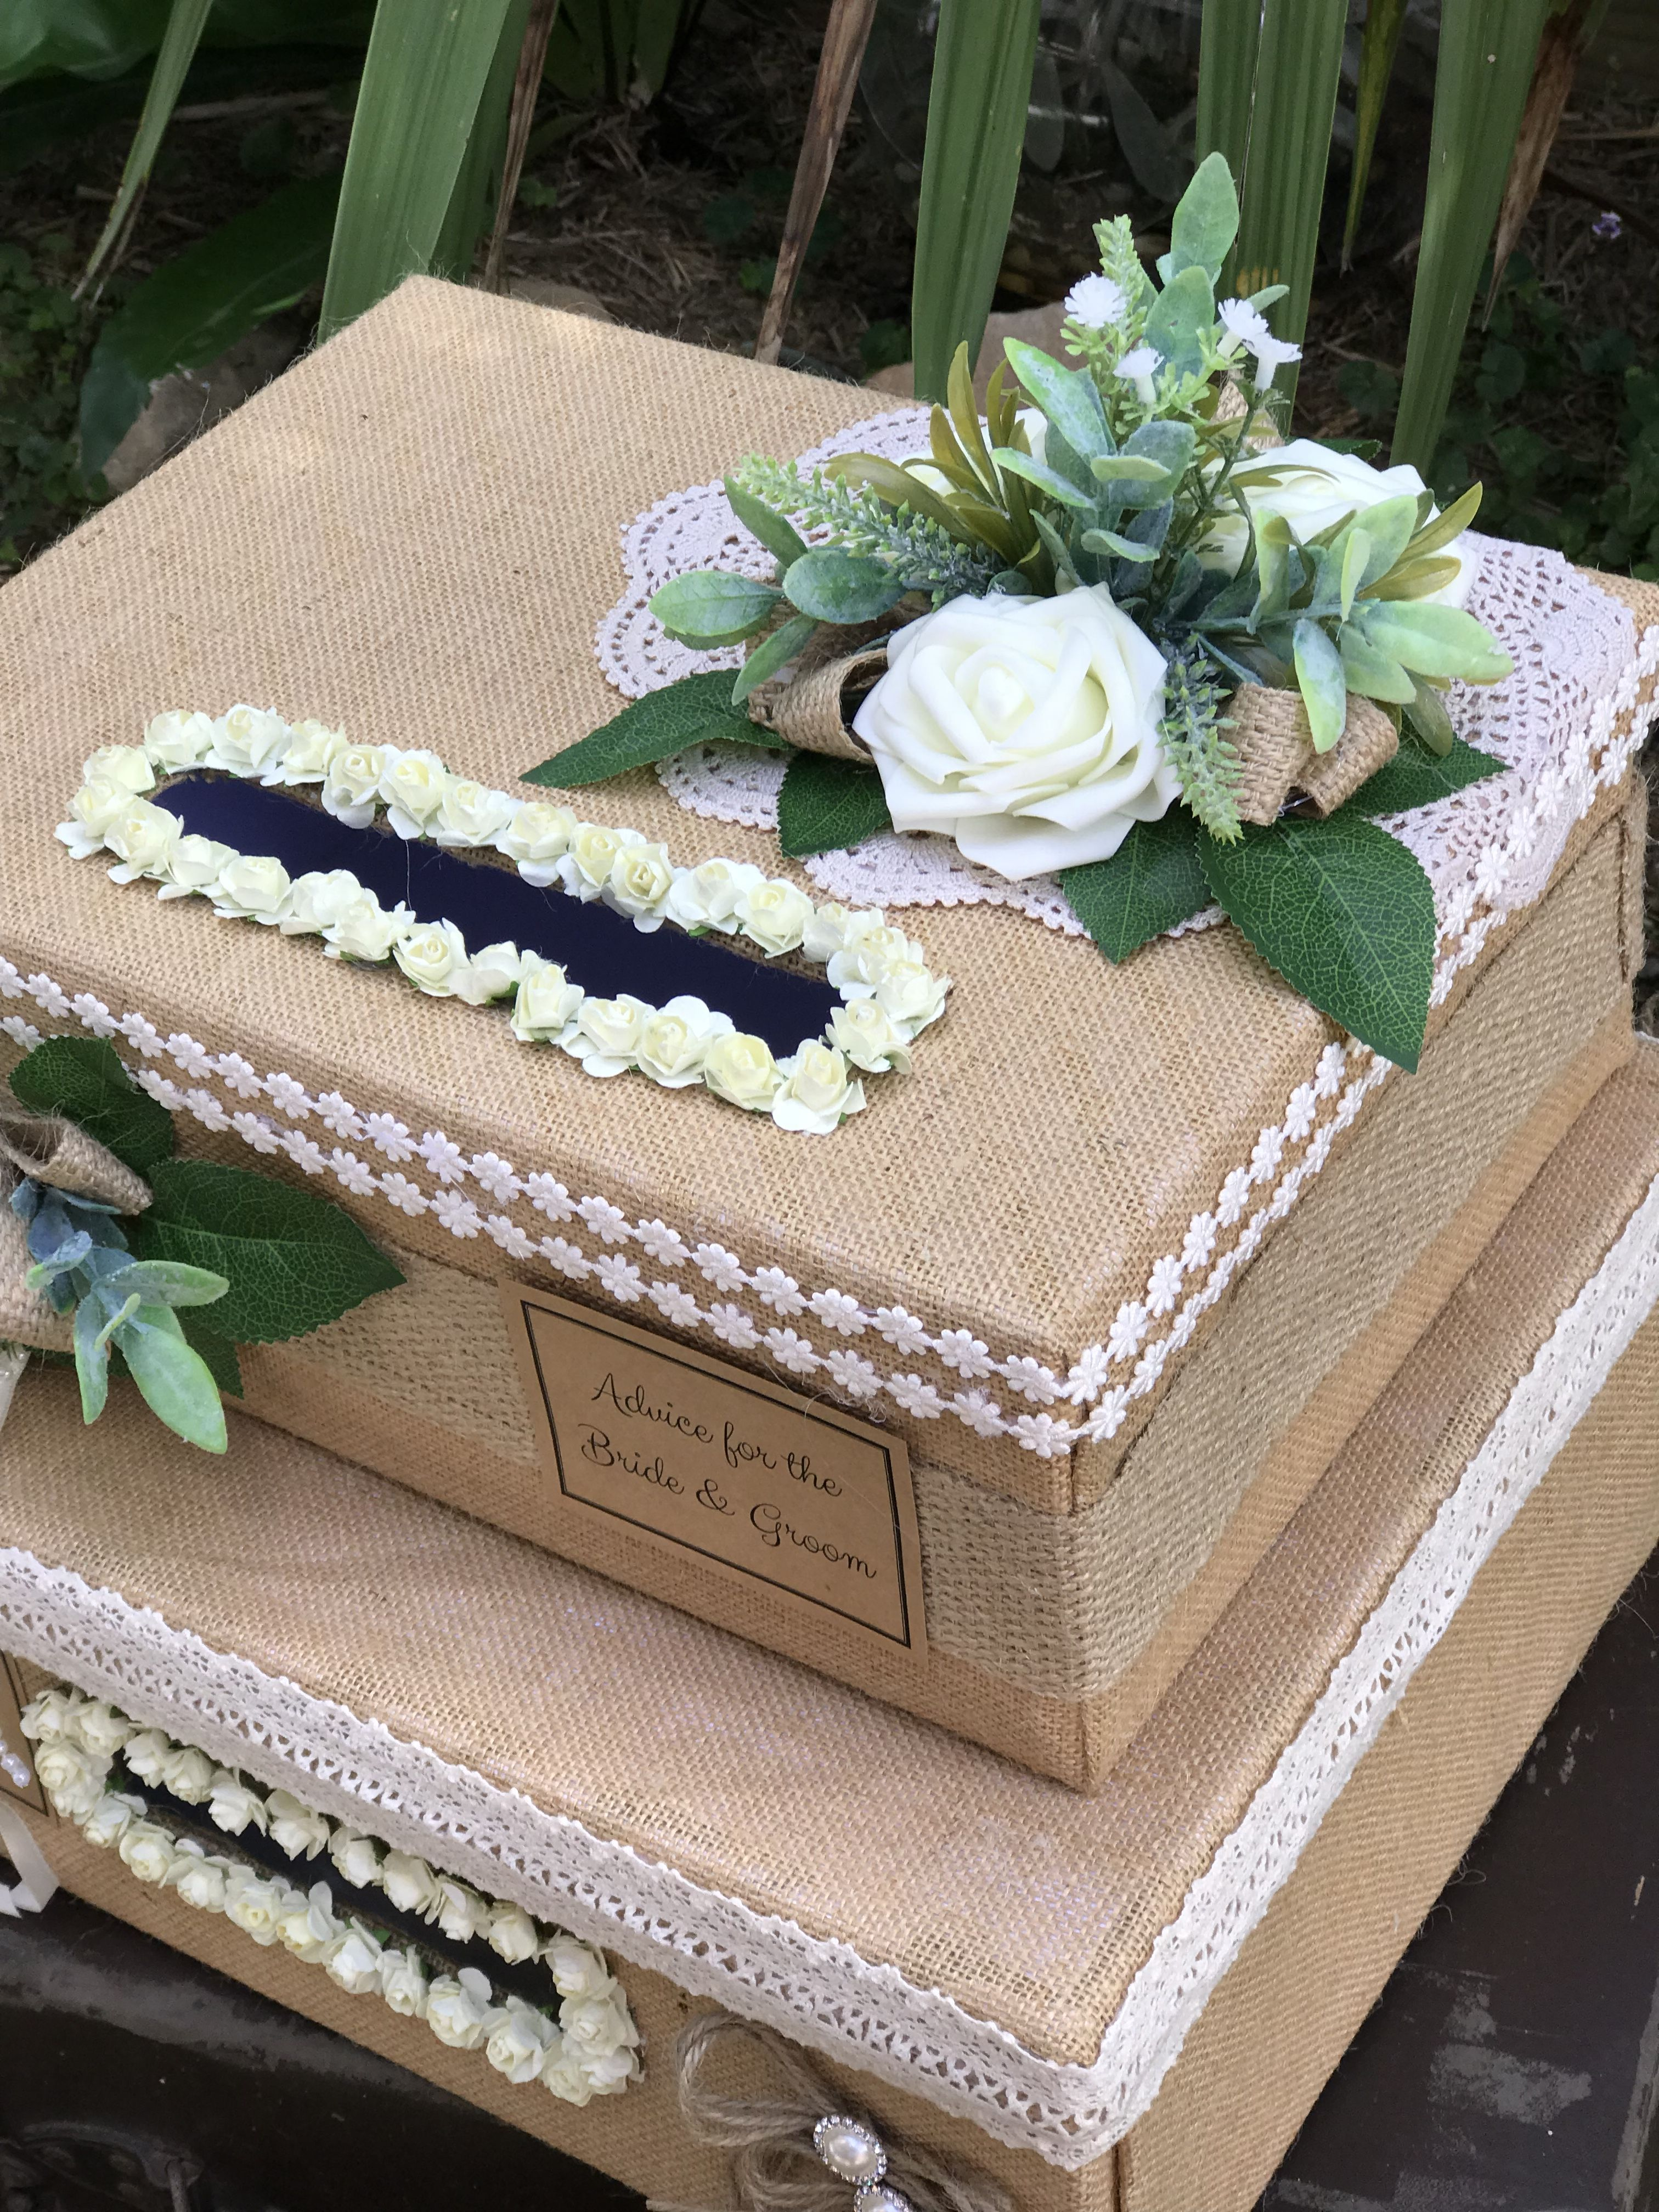 Advice for the bride and groom rustic card box wedding